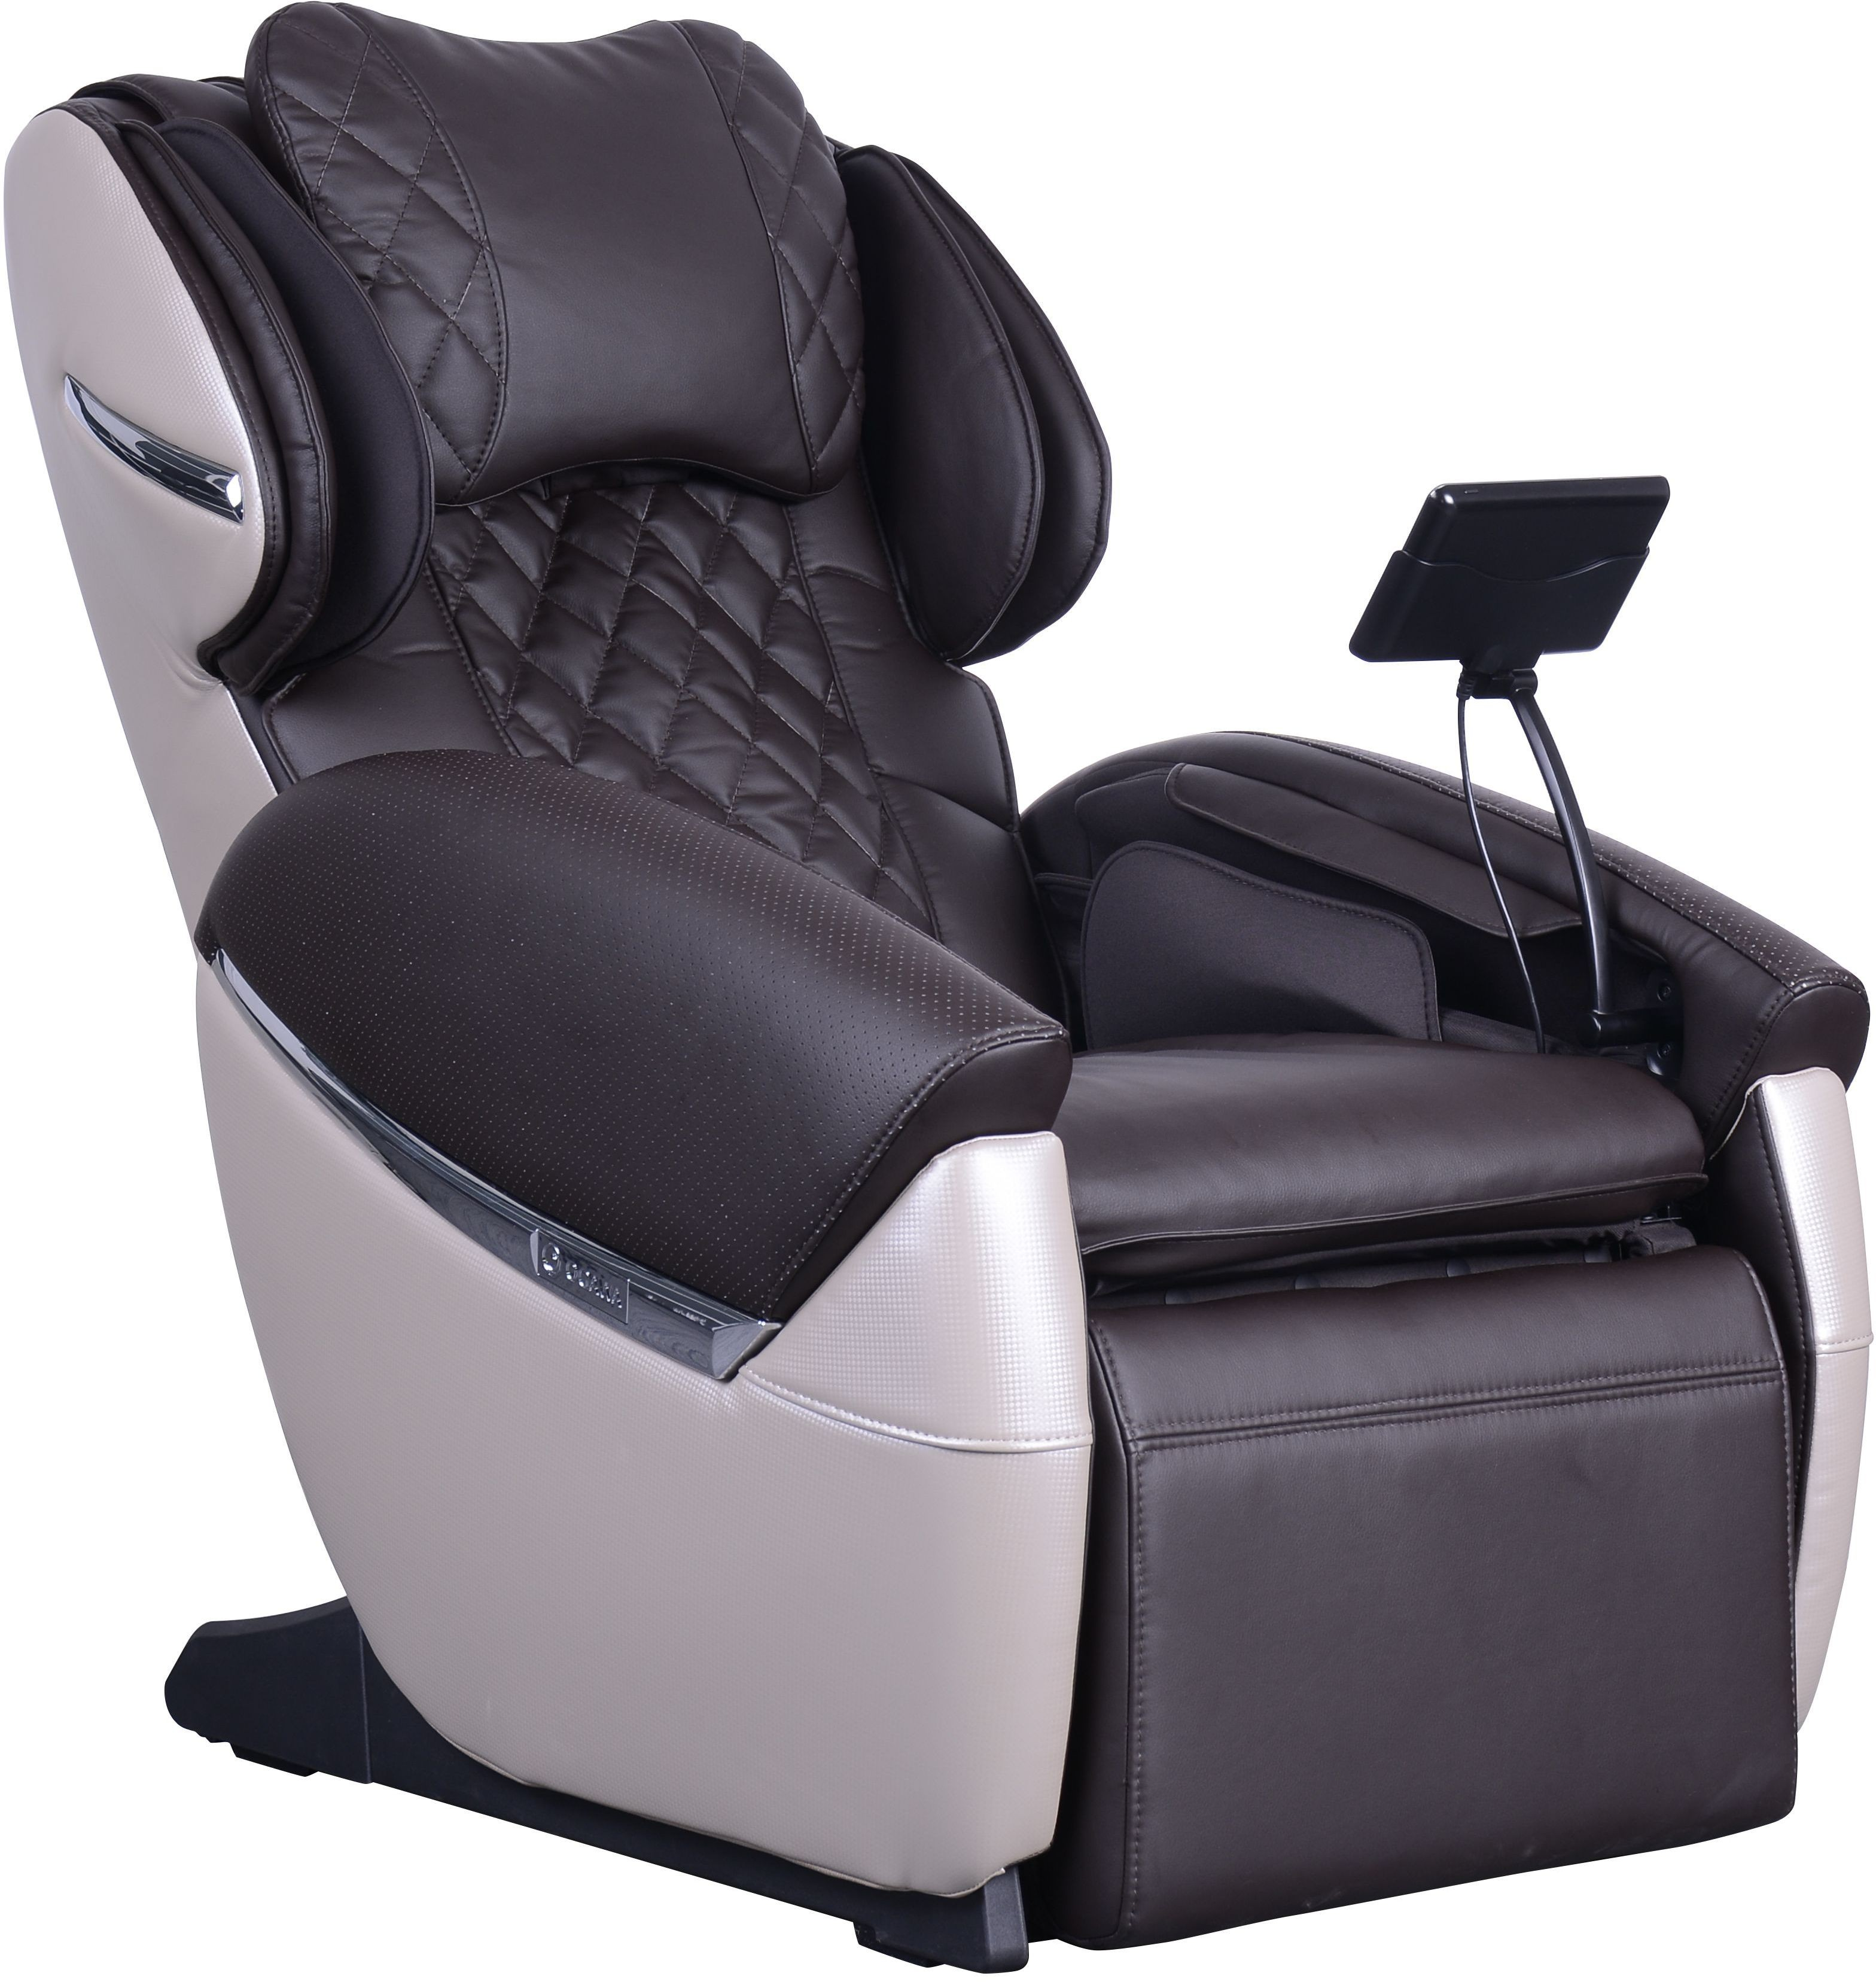 ogawa massage chair suede office ivory and chocolate evol from cozzia coleman 2475412